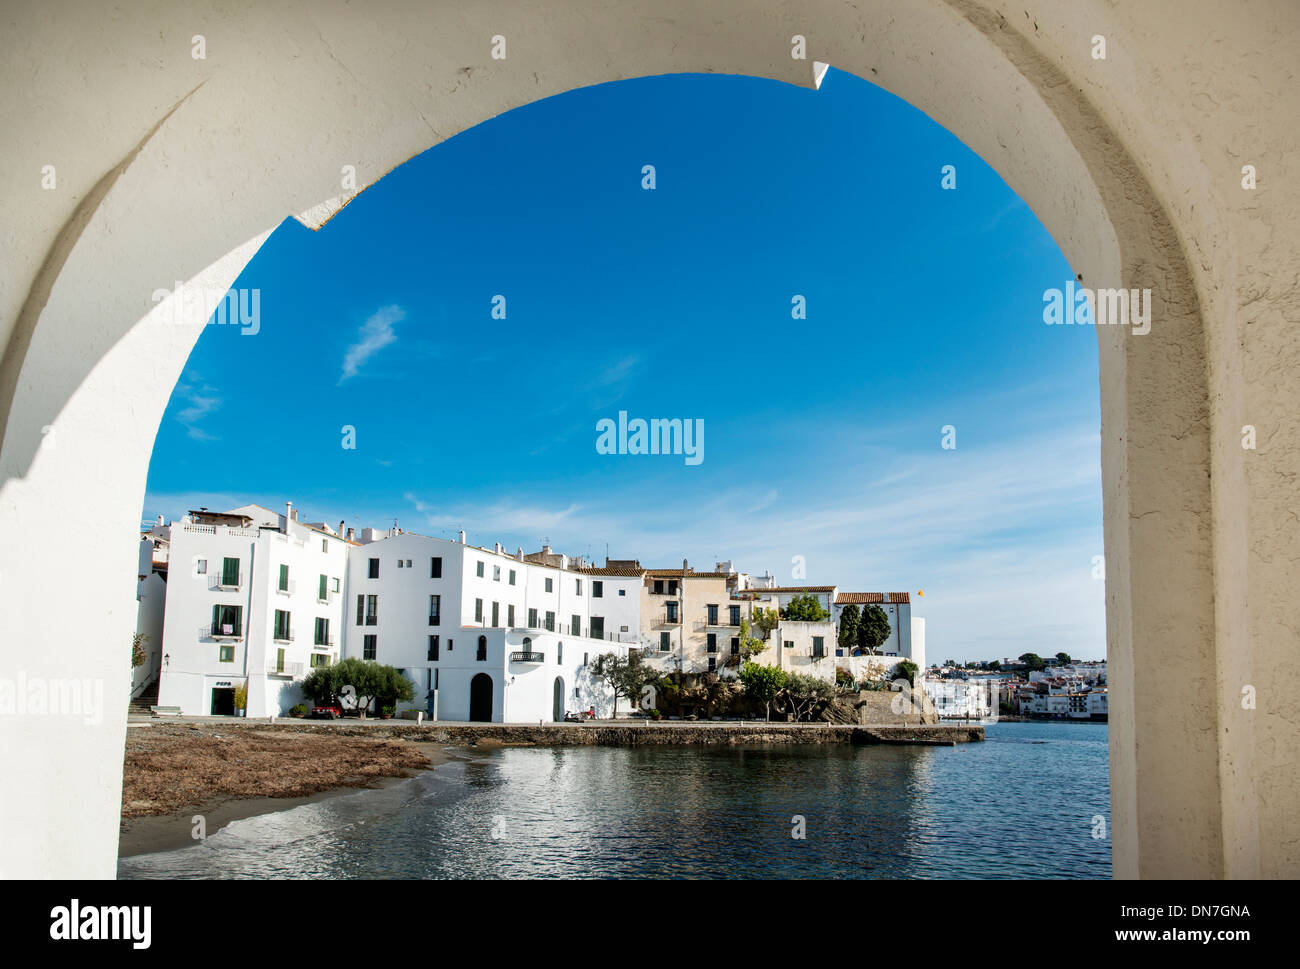 Arch Framing The Sky Stockfotos & Arch Framing The Sky Bilder - Alamy